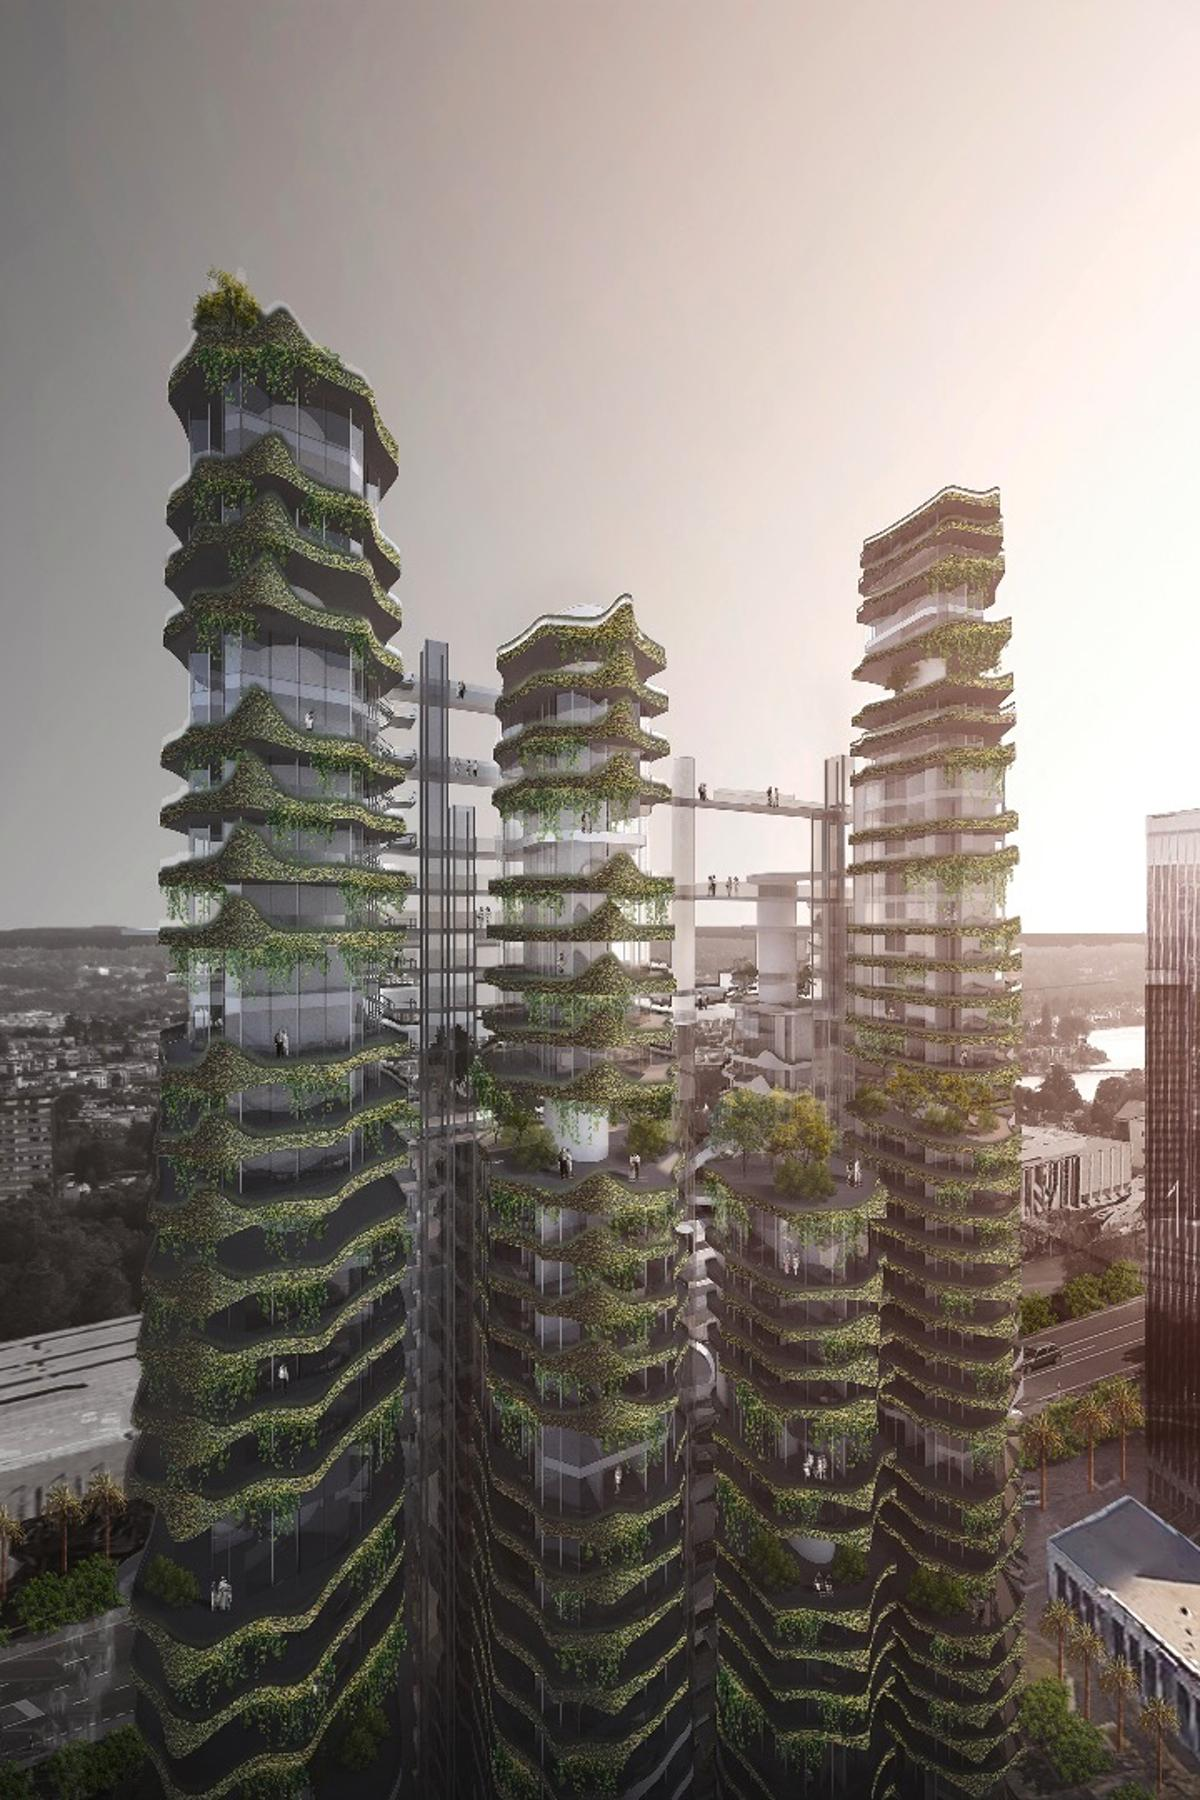 Nine interconnected towers dotted with greenery and public spaces would provide a city above the streets